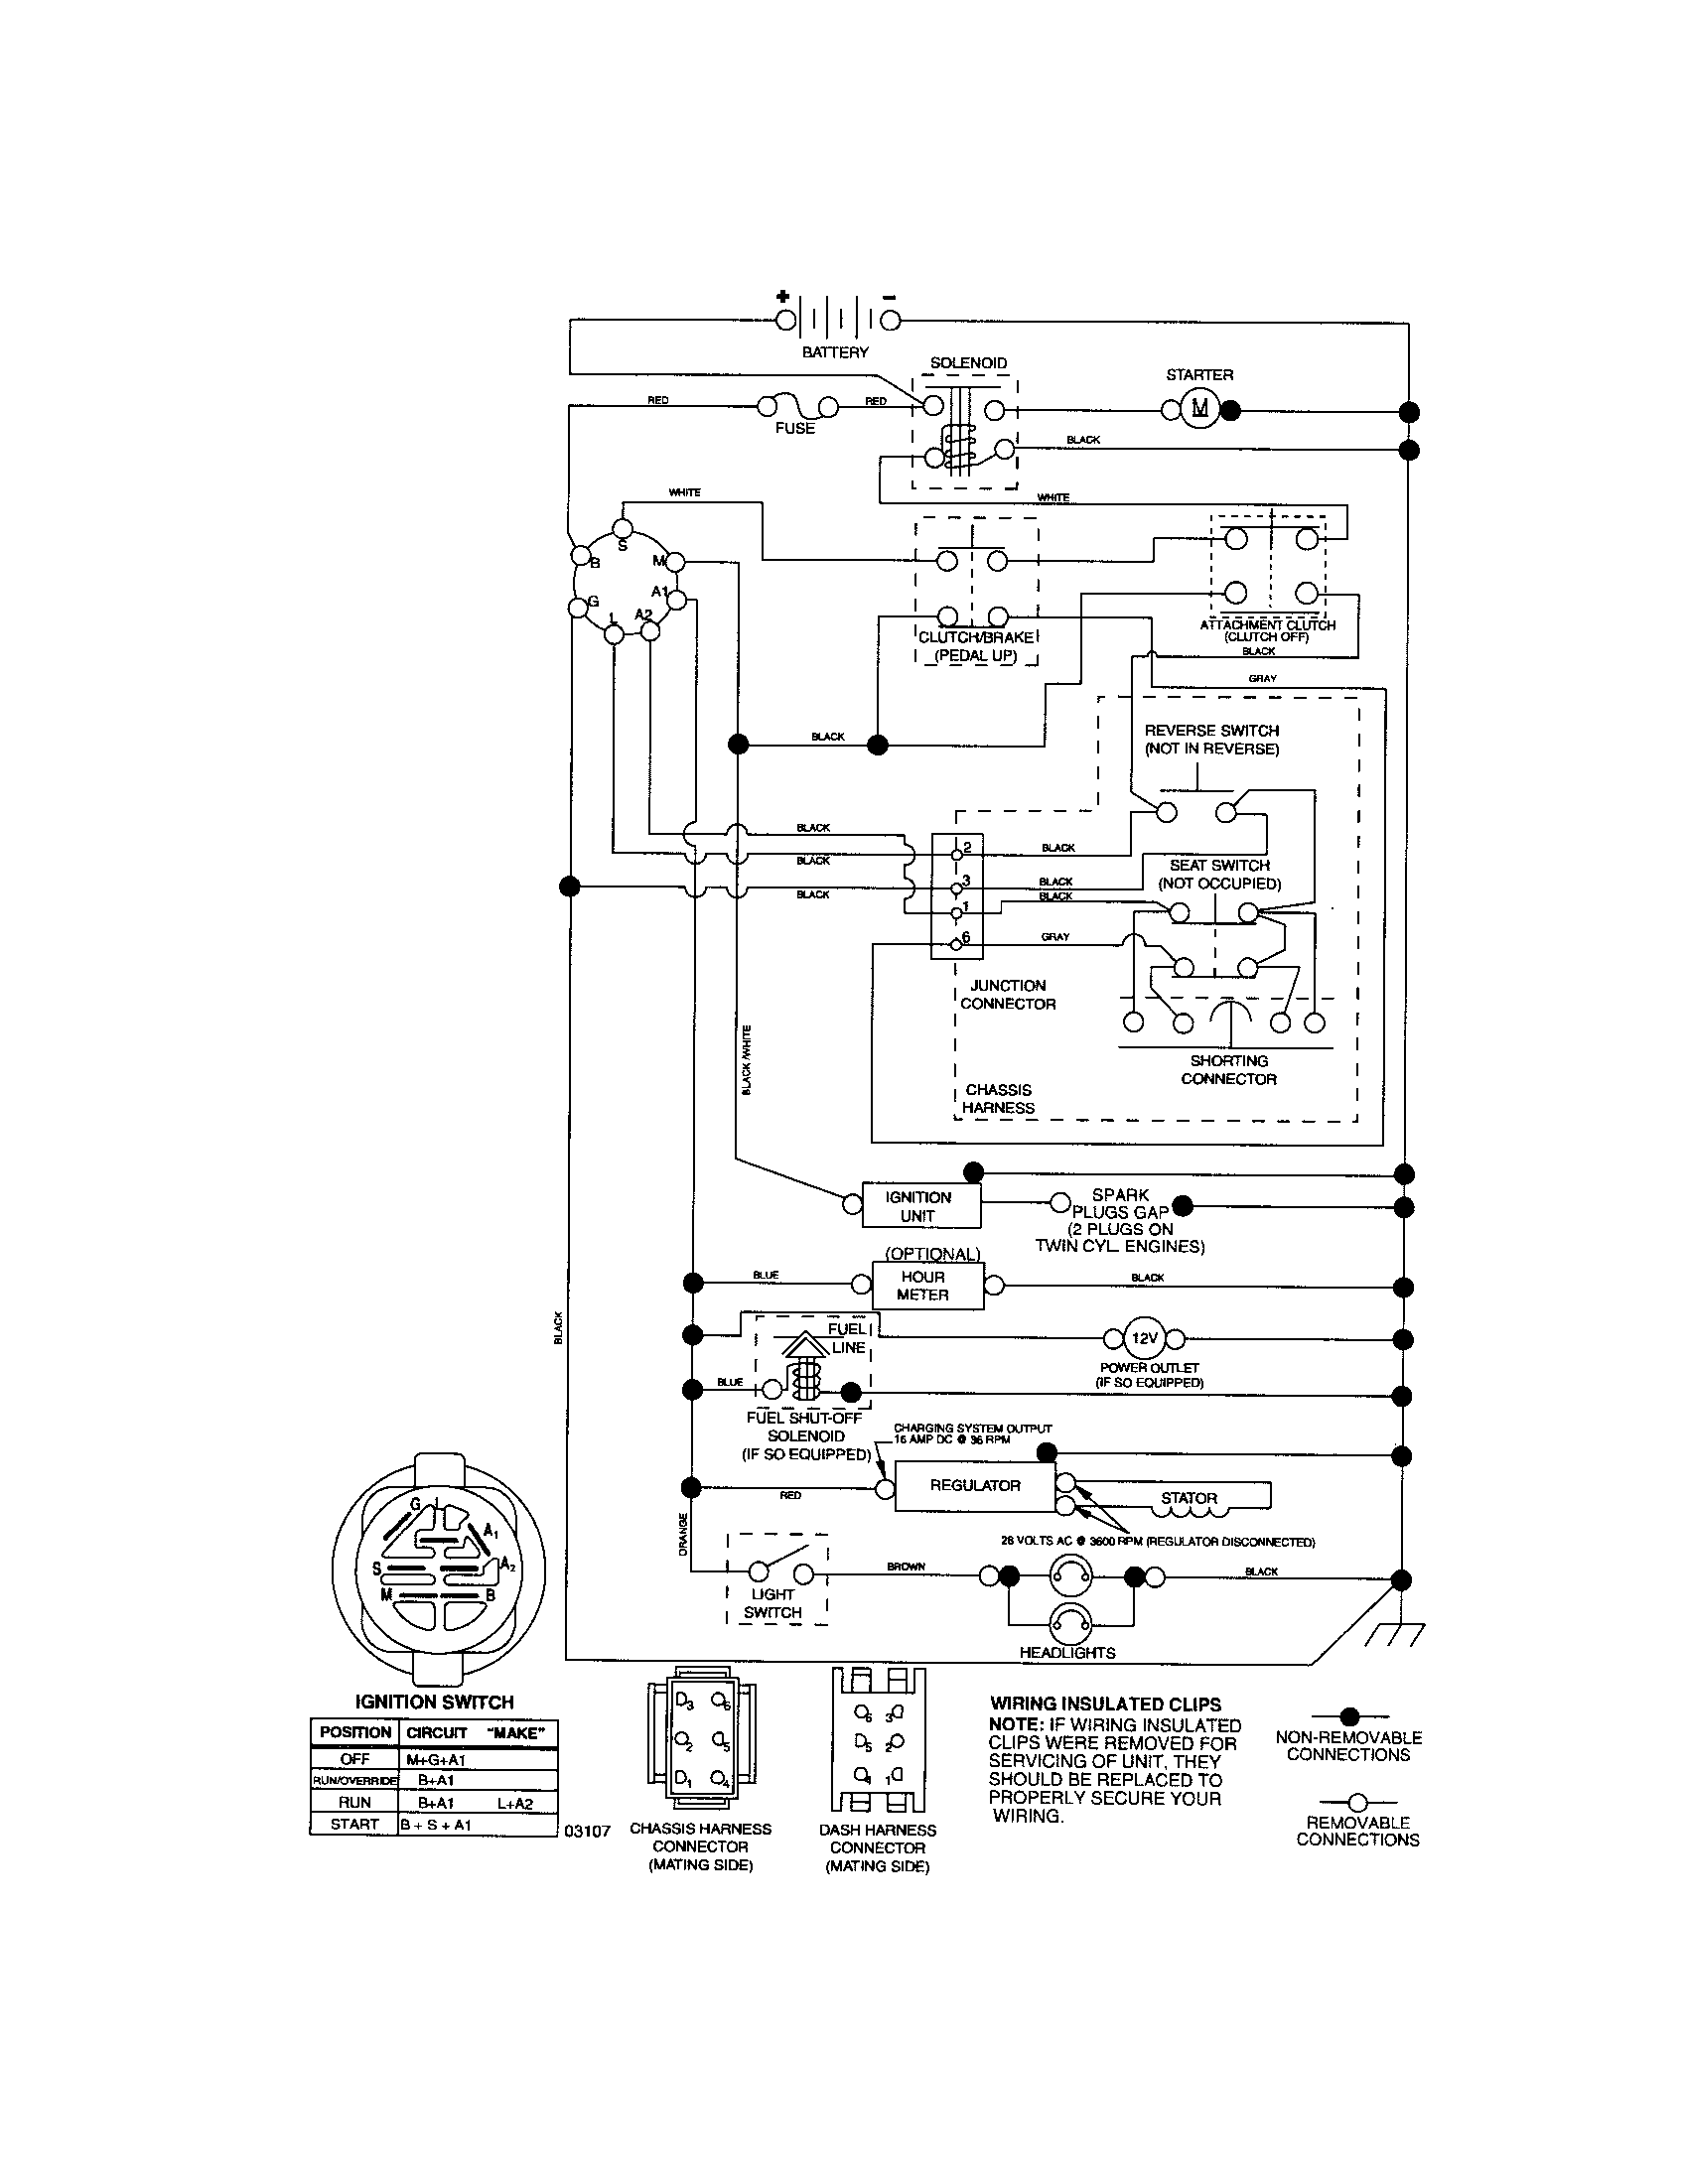 6af5f1447fd13c8443376822ddc1e105 craftsman riding mower electrical diagram wiring diagram craftsman lawn tractor wiring schematic at reclaimingppi.co